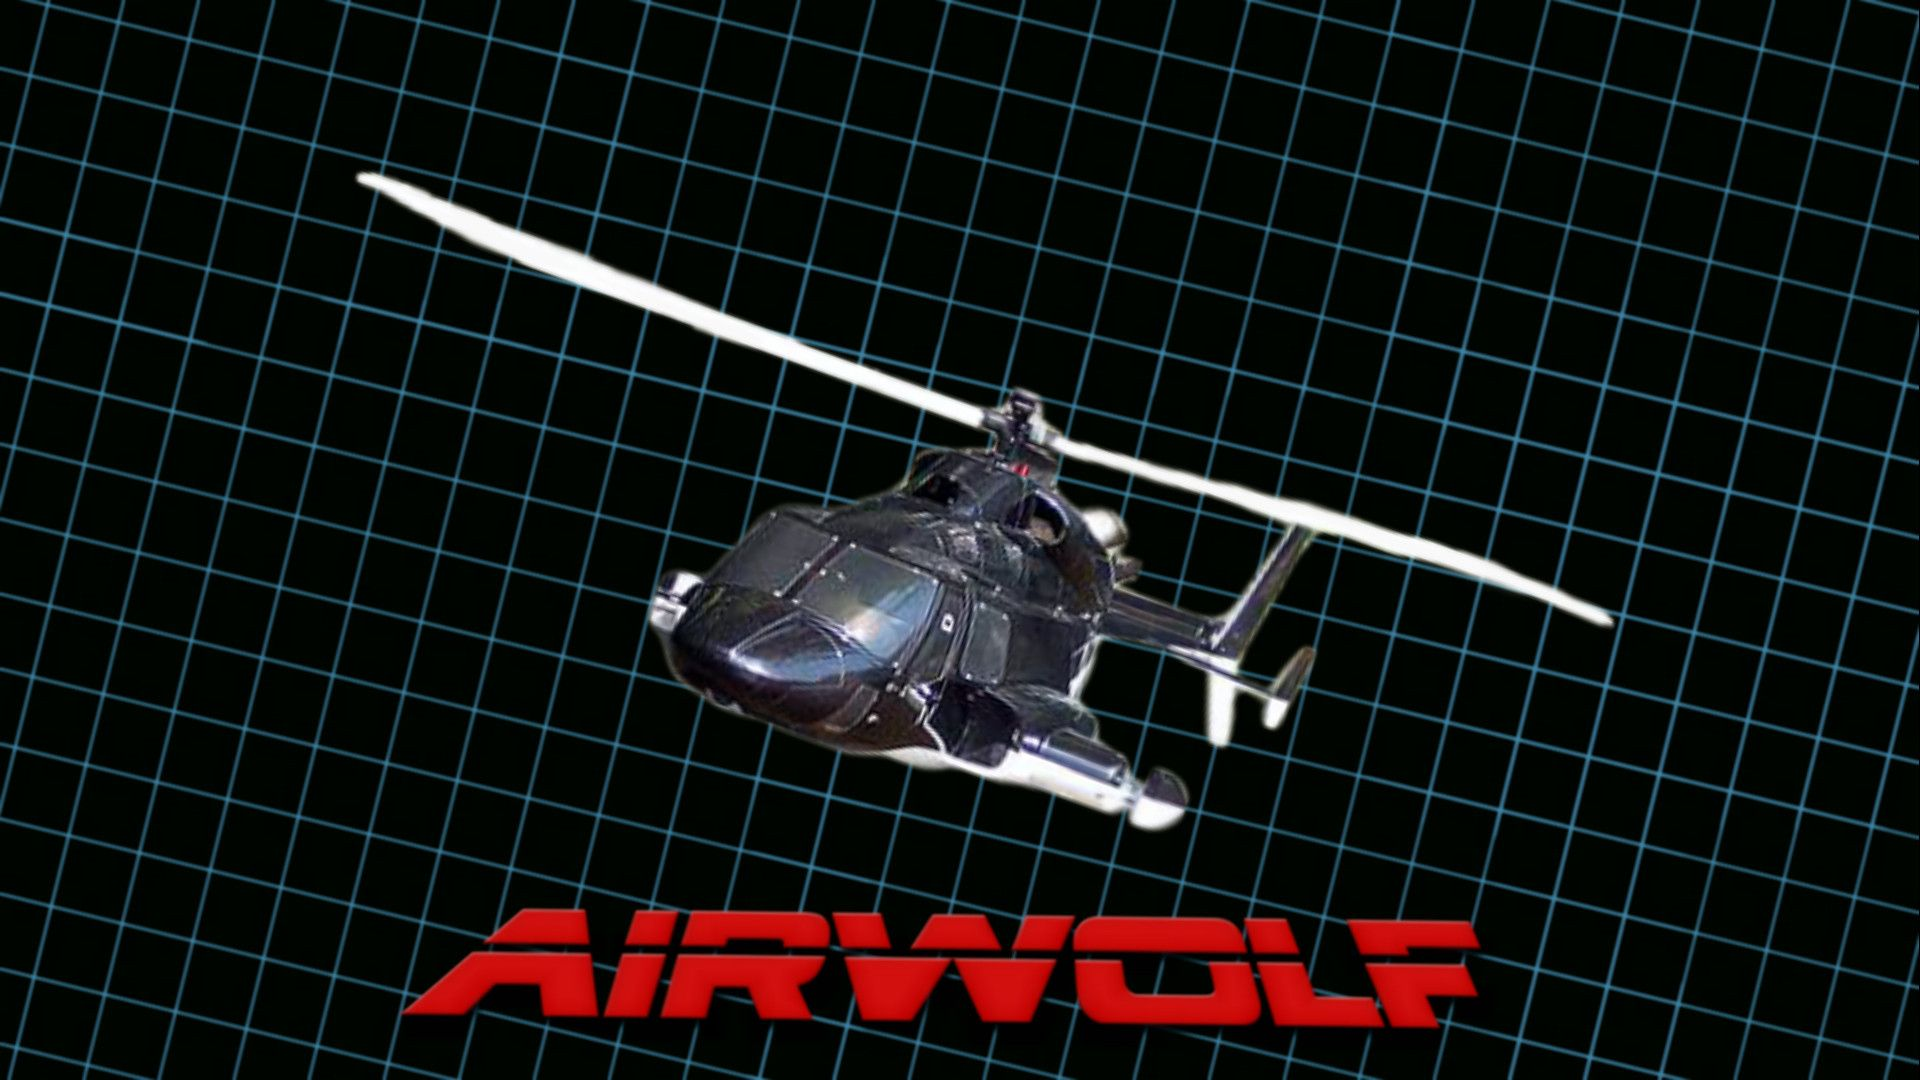 Airwolf Wallpaper